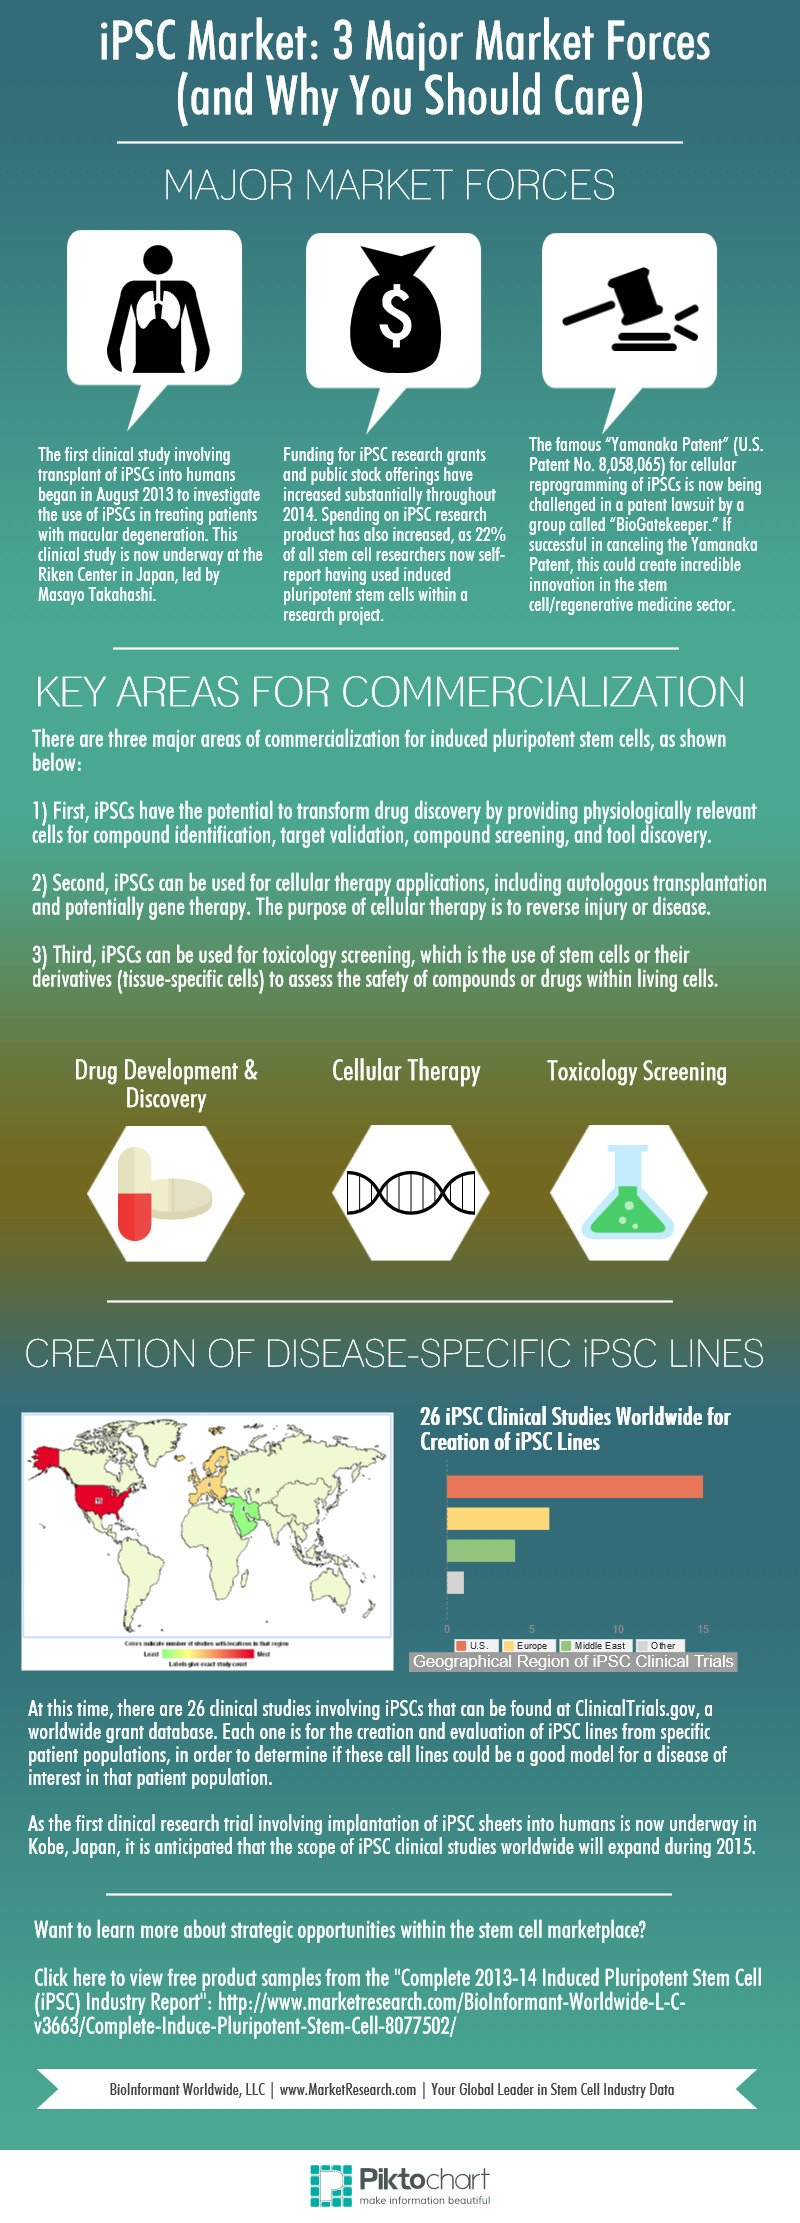 iPSC_Market__3_Major_Market_Forces_(and_Why_You_Should_Care)_-_MarketResearch.com